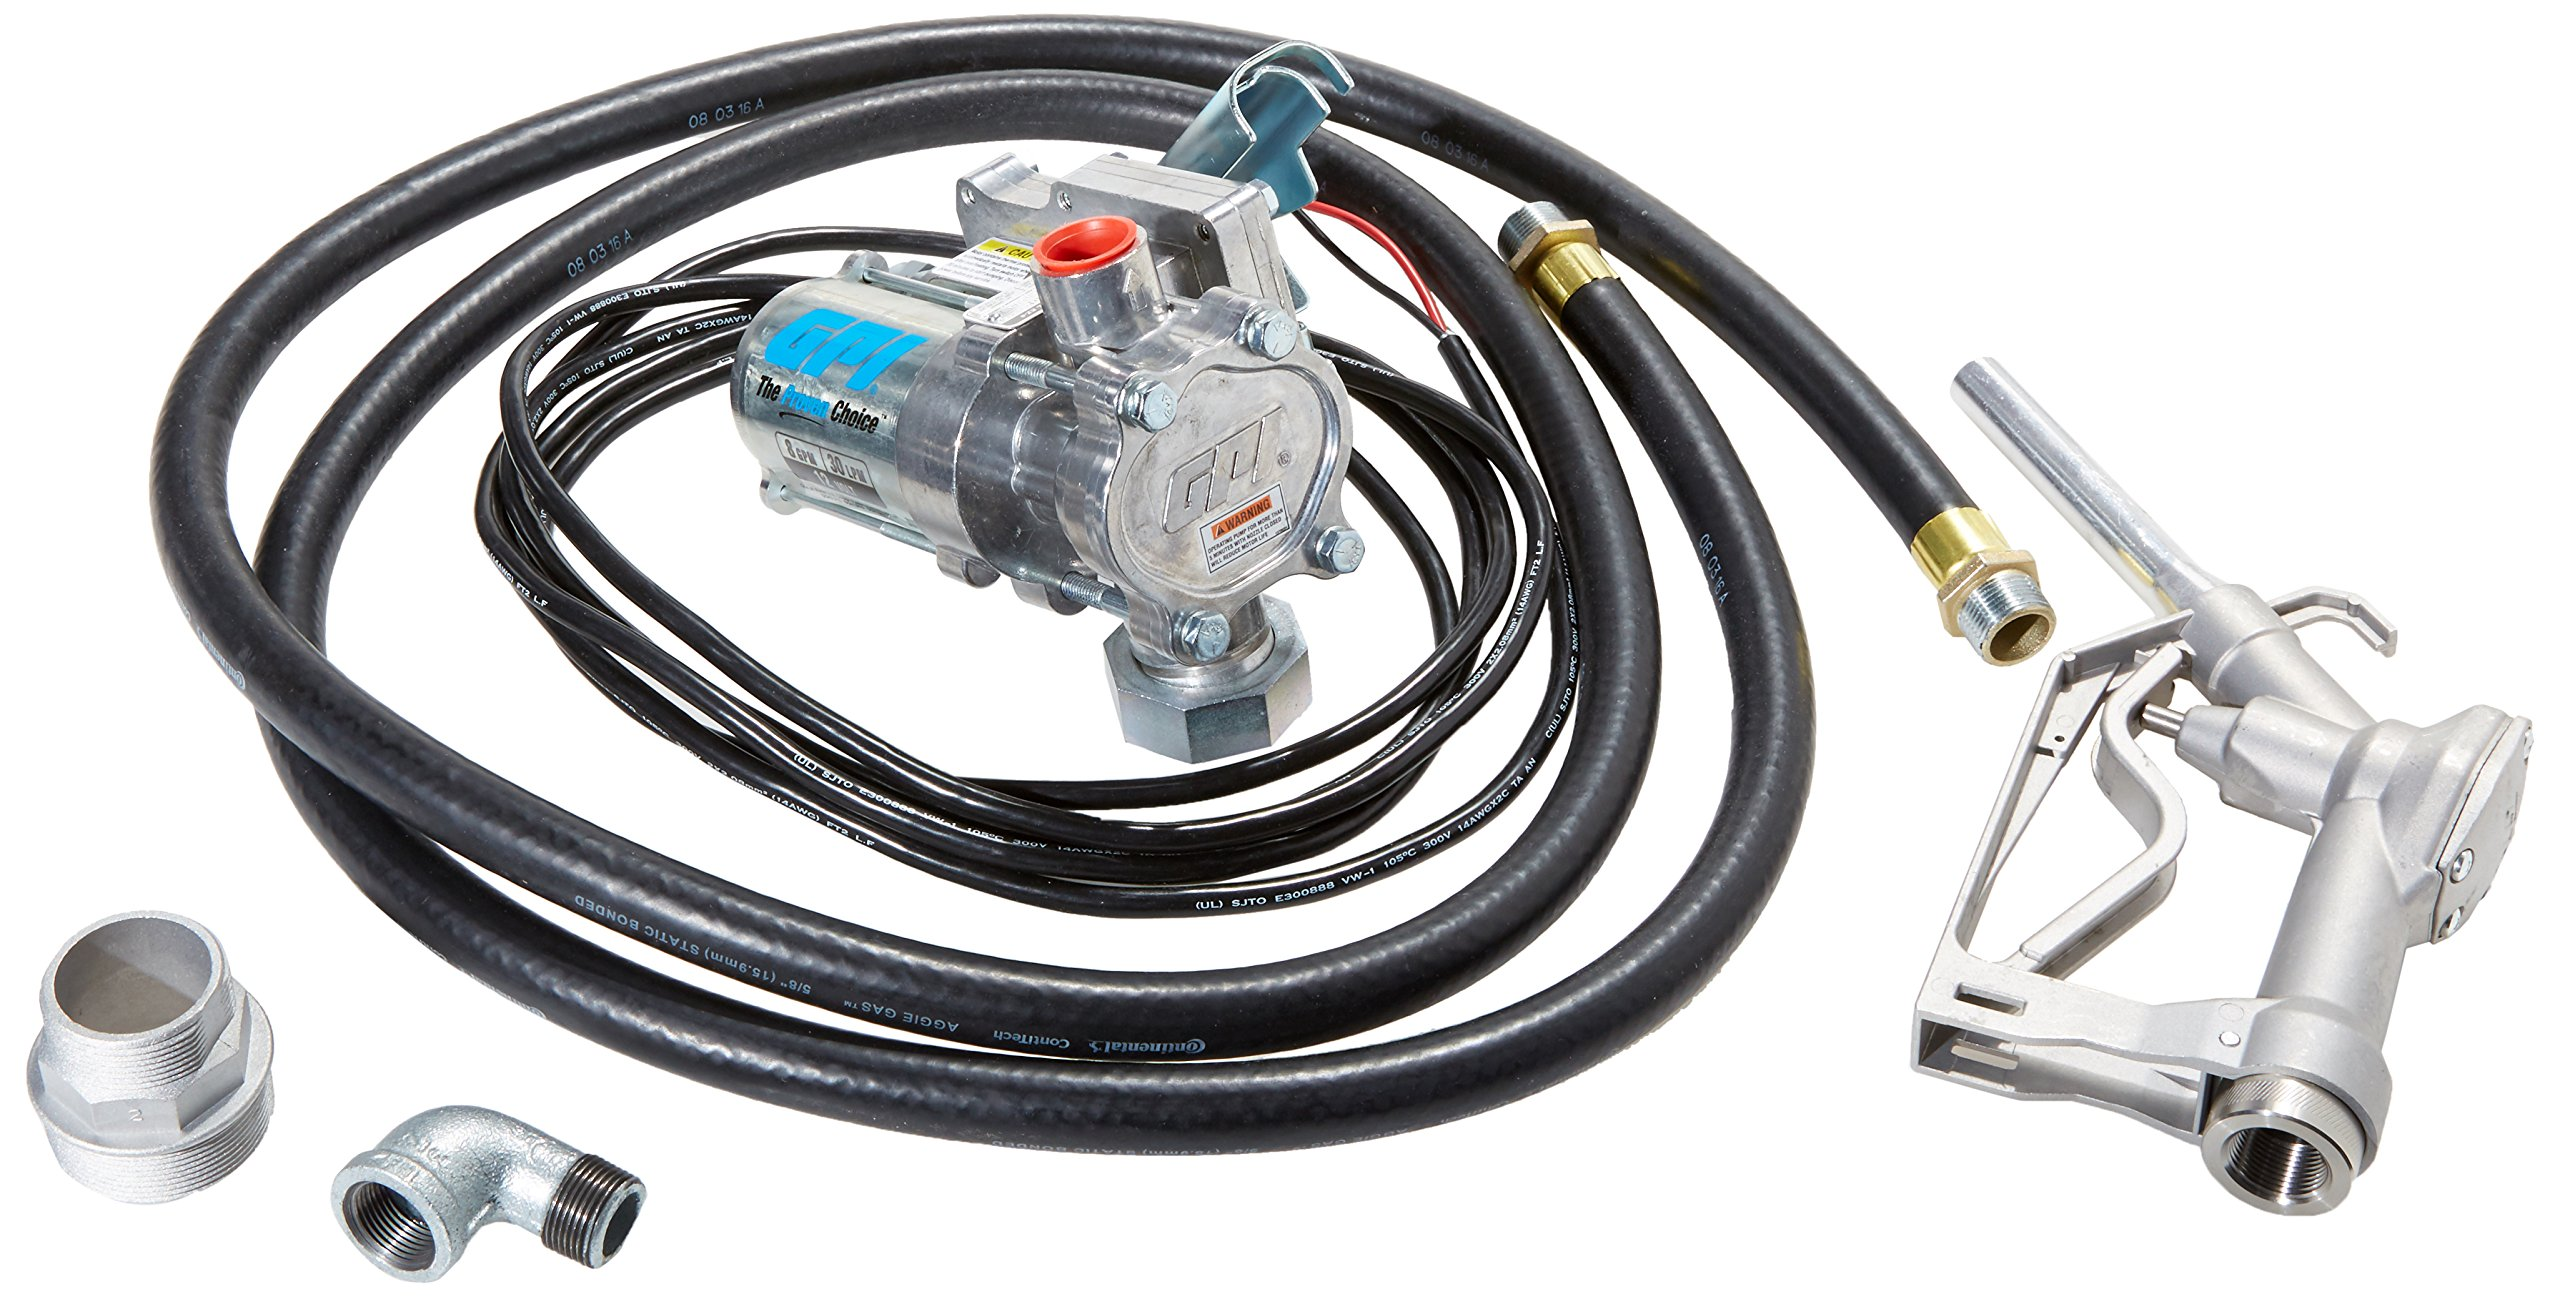 GPI 137100-05, EZ-8 Aluminum Fuel Transfer Pump with Spin Collar, 8 GPM, 12-VDC, 0.75-Inch Manual Nozzle, 10-Foot Hose, 15-Foot Power Cord, Suction Pipe Sold Separately